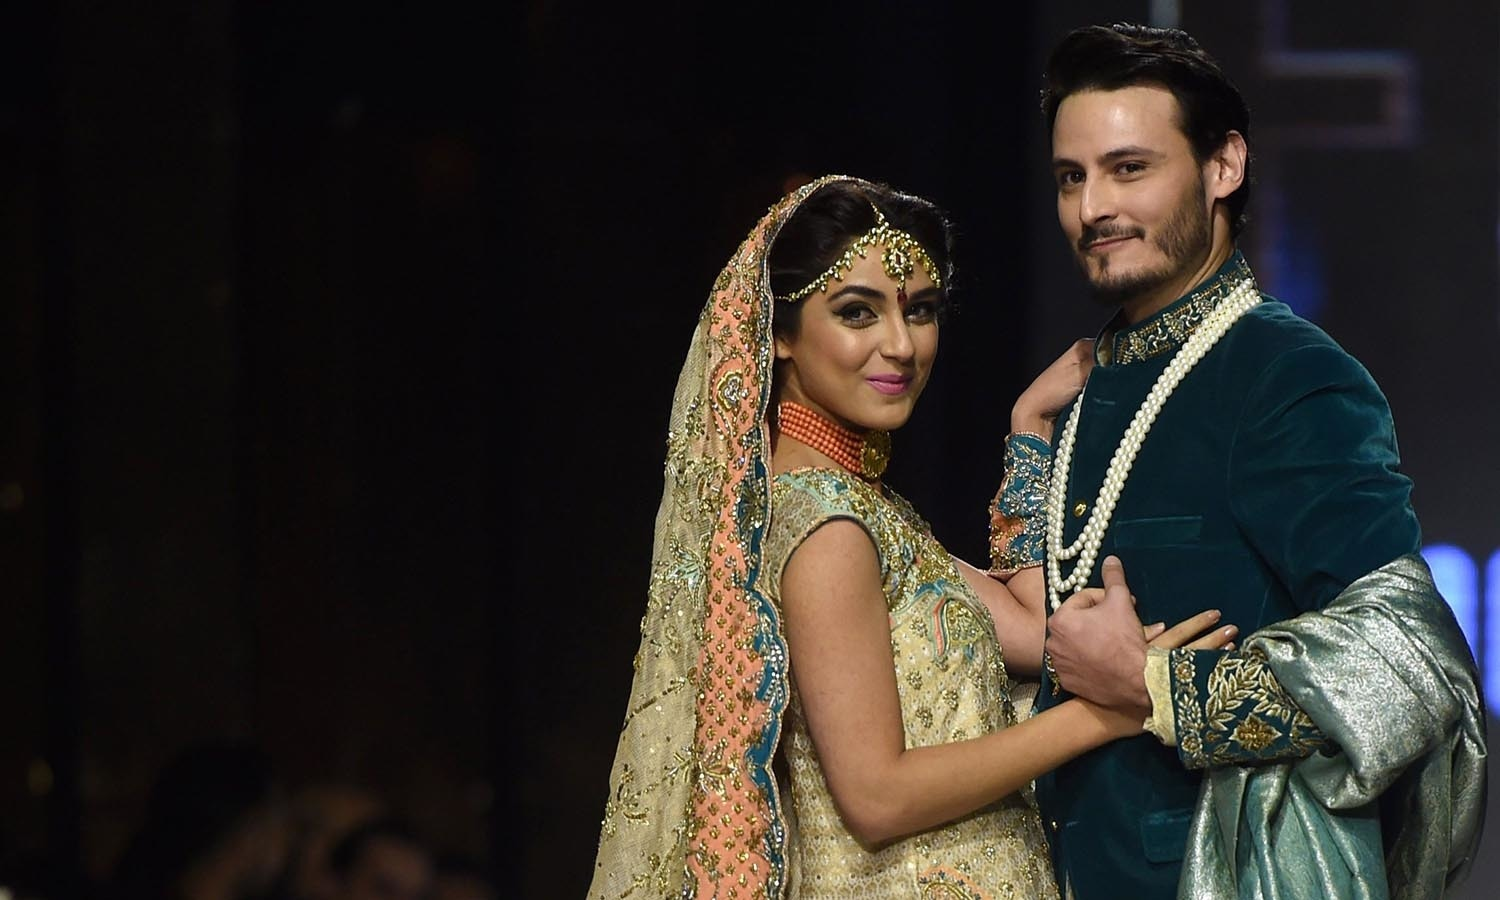 Models present creations by  designer Wardha Saleem on the second day of the Fashion Pakistan Week in Karachi. — AFP